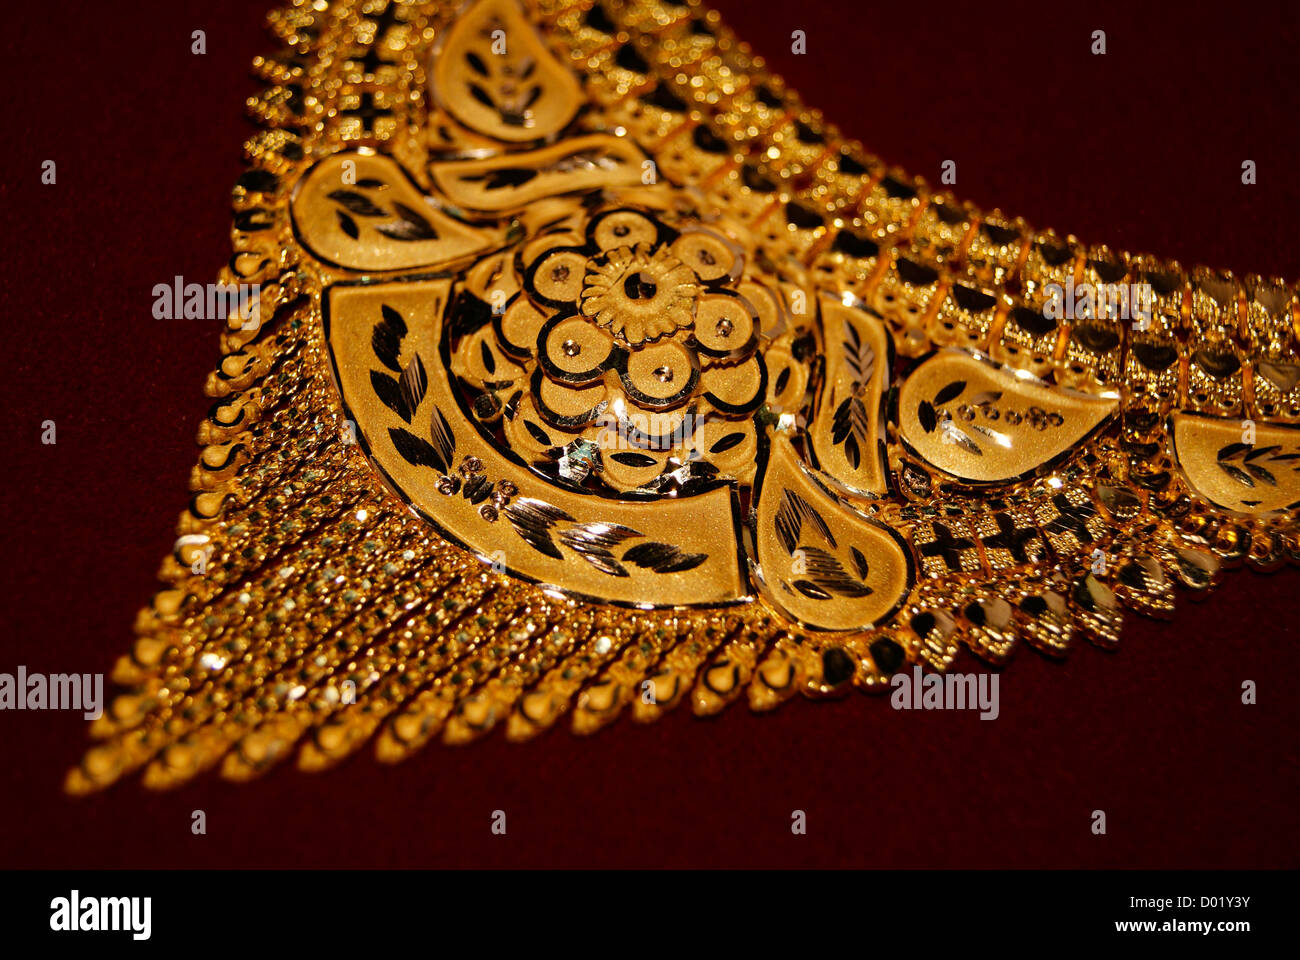 Gold jewellery Ornaments Golden Necklace Closeup View of Jewel ...